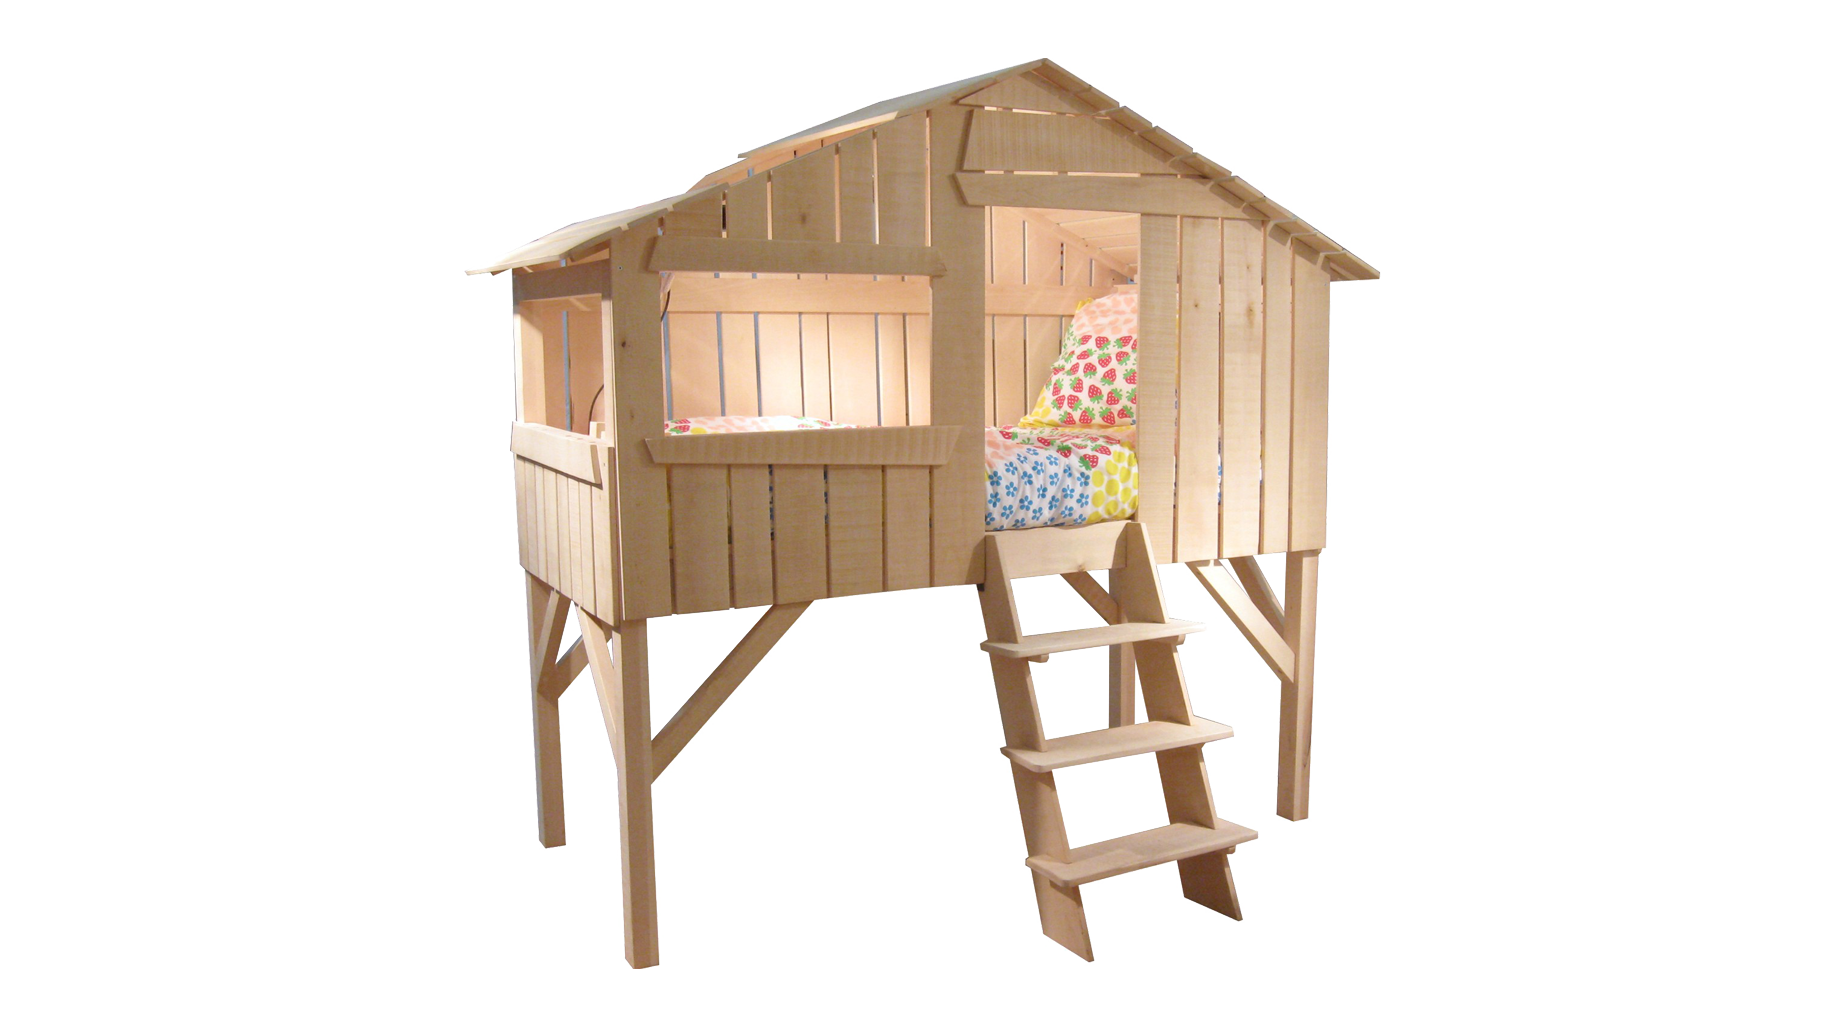 Tree house beds 28 images 25 treehouse bed designs for Treehouse toddler bed